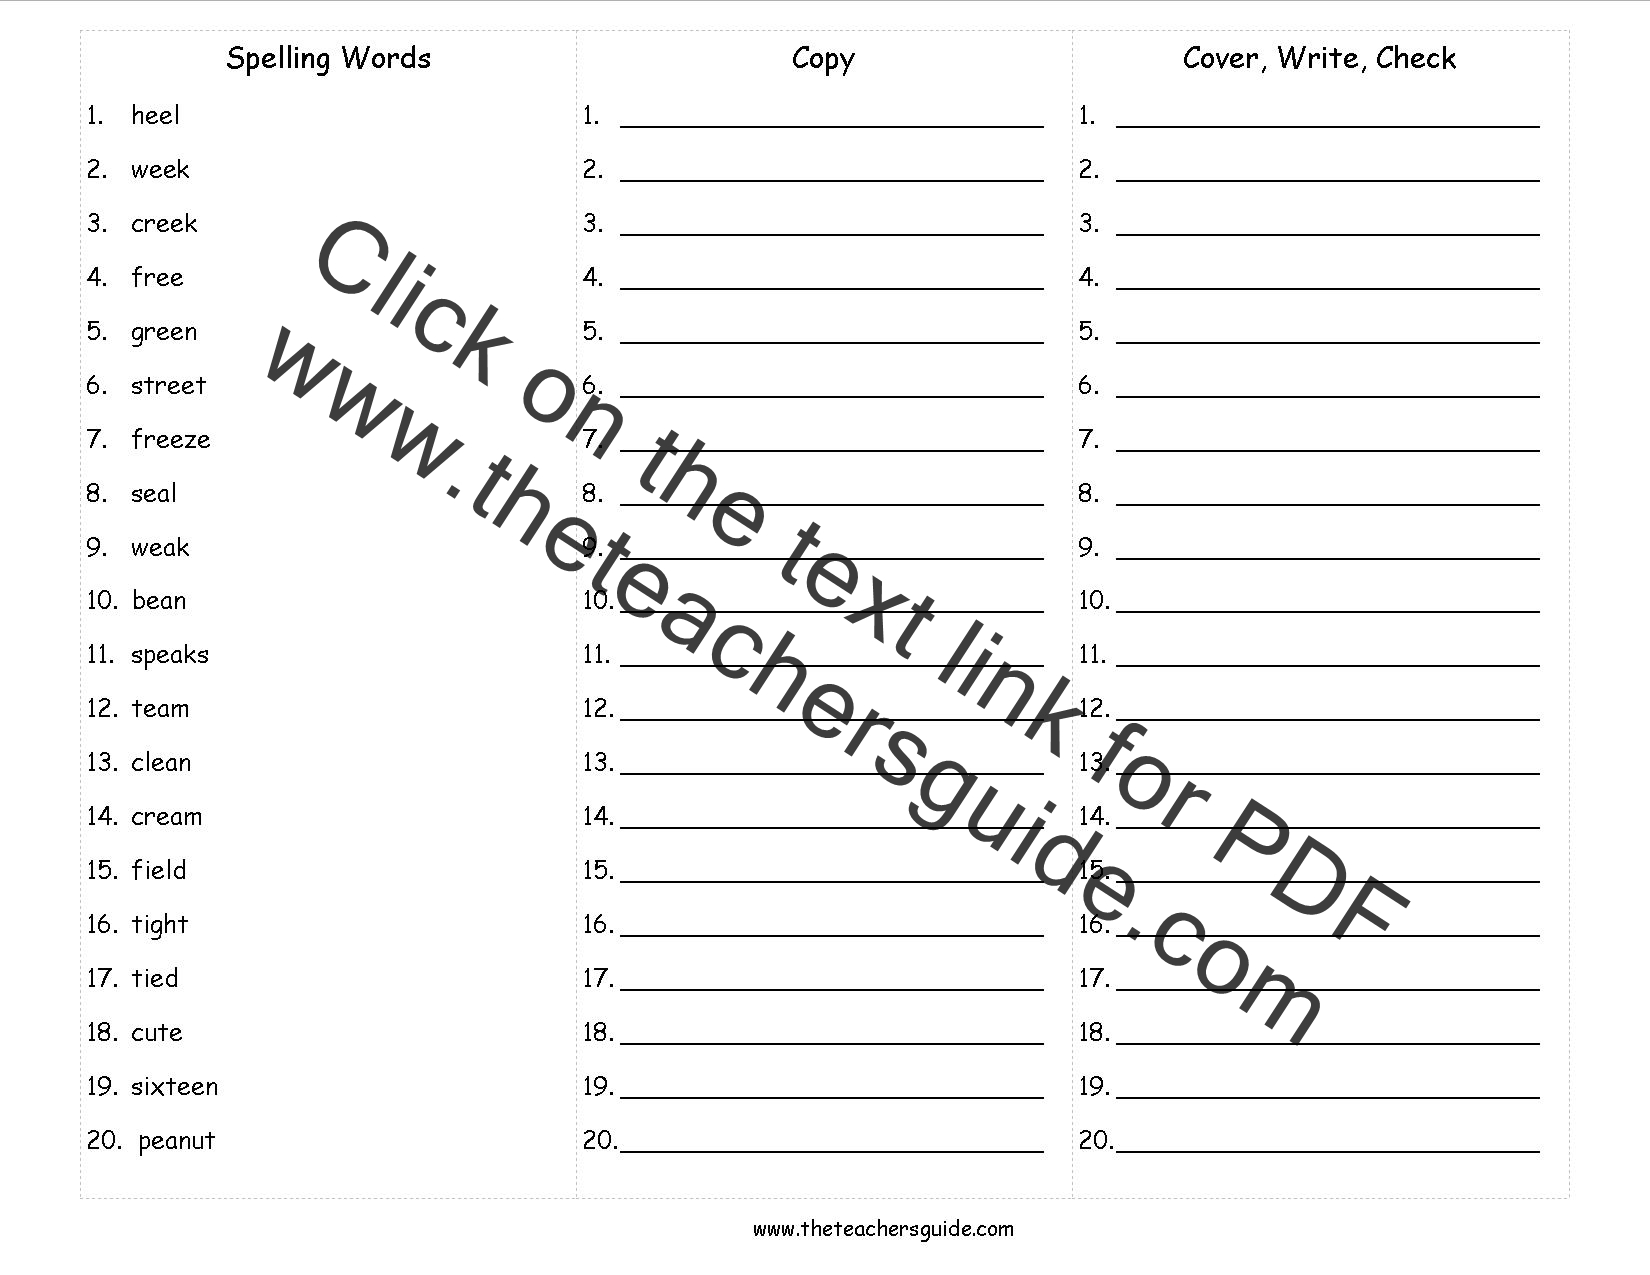 worksheet Spelling Worksheets For 3rd Grade wonders third grade unit two week printouts mcgraw hill spelling words cover copy write